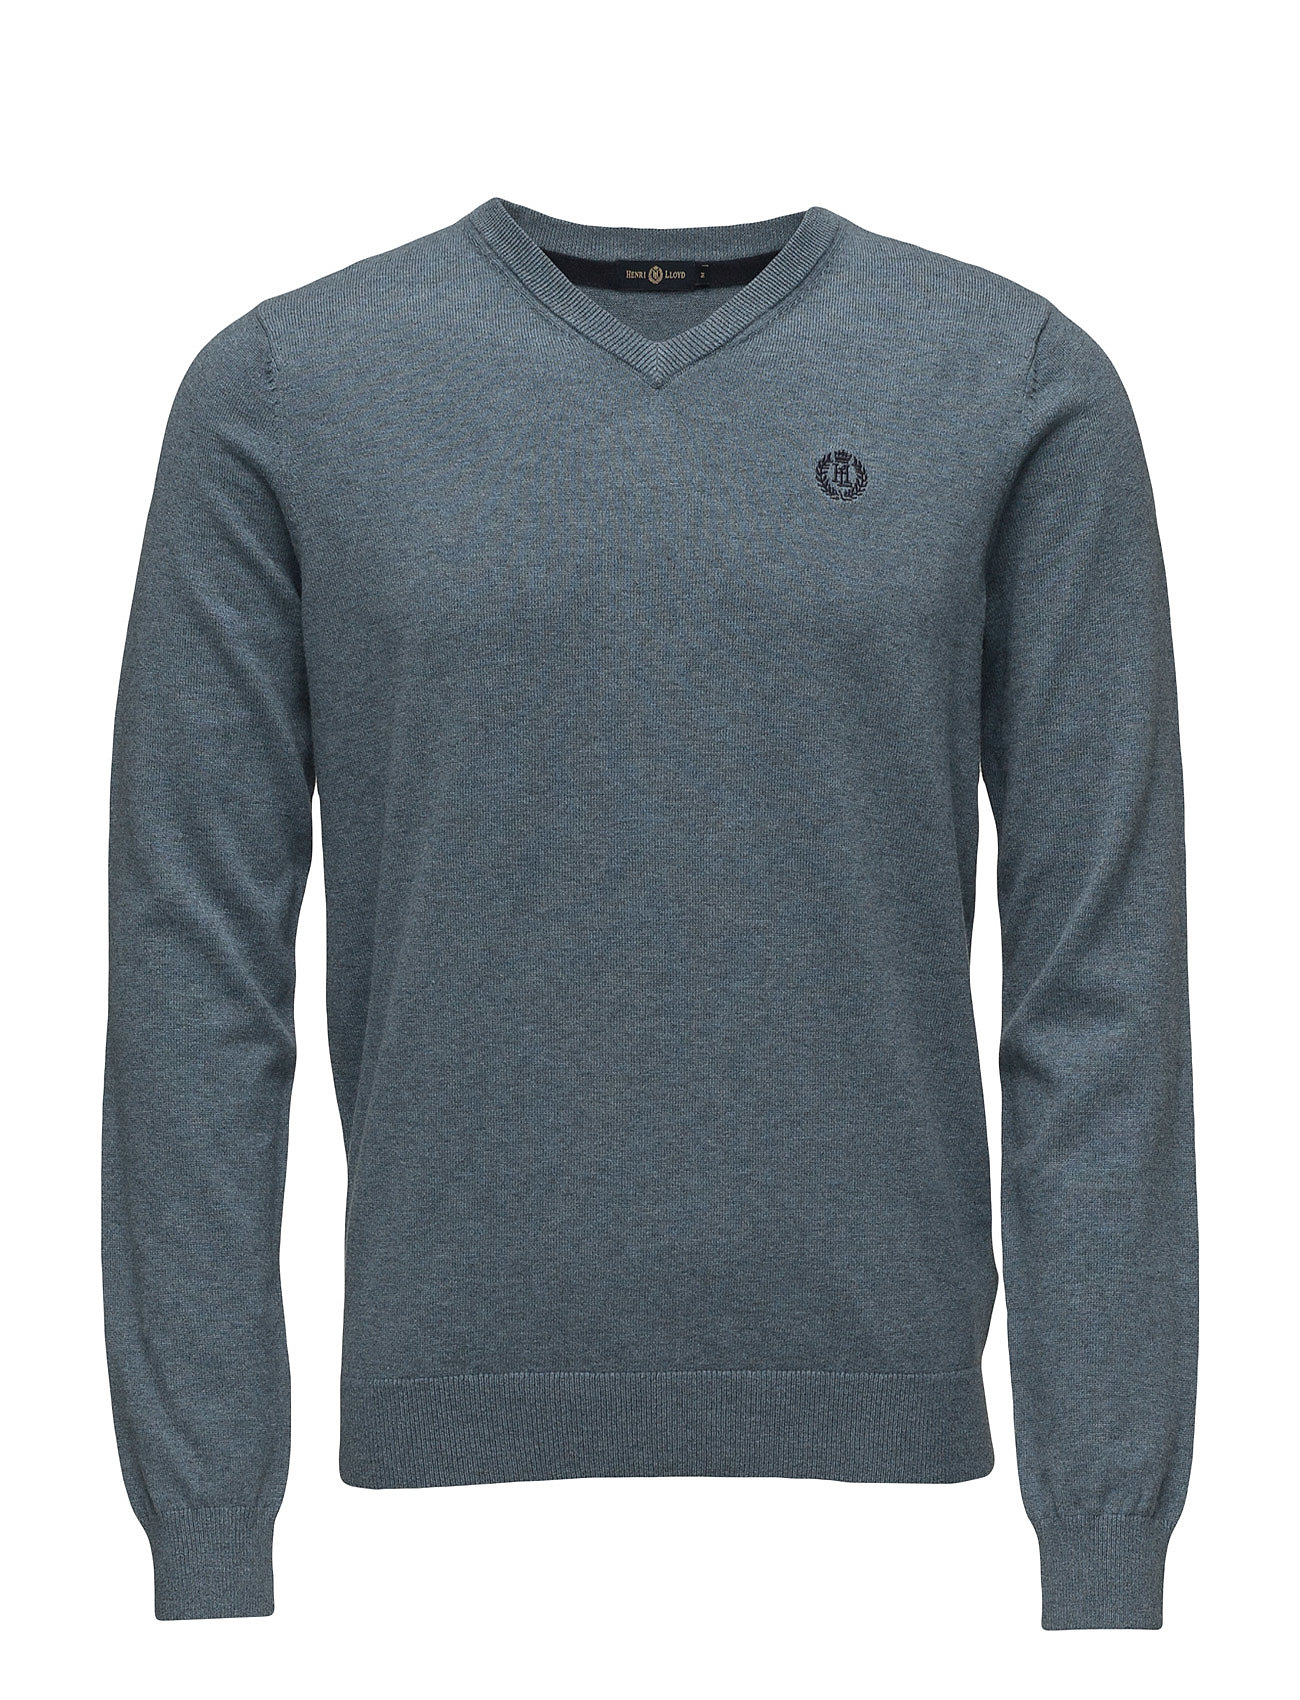 henri lloyd Moray regular v neck knit på boozt.com dk